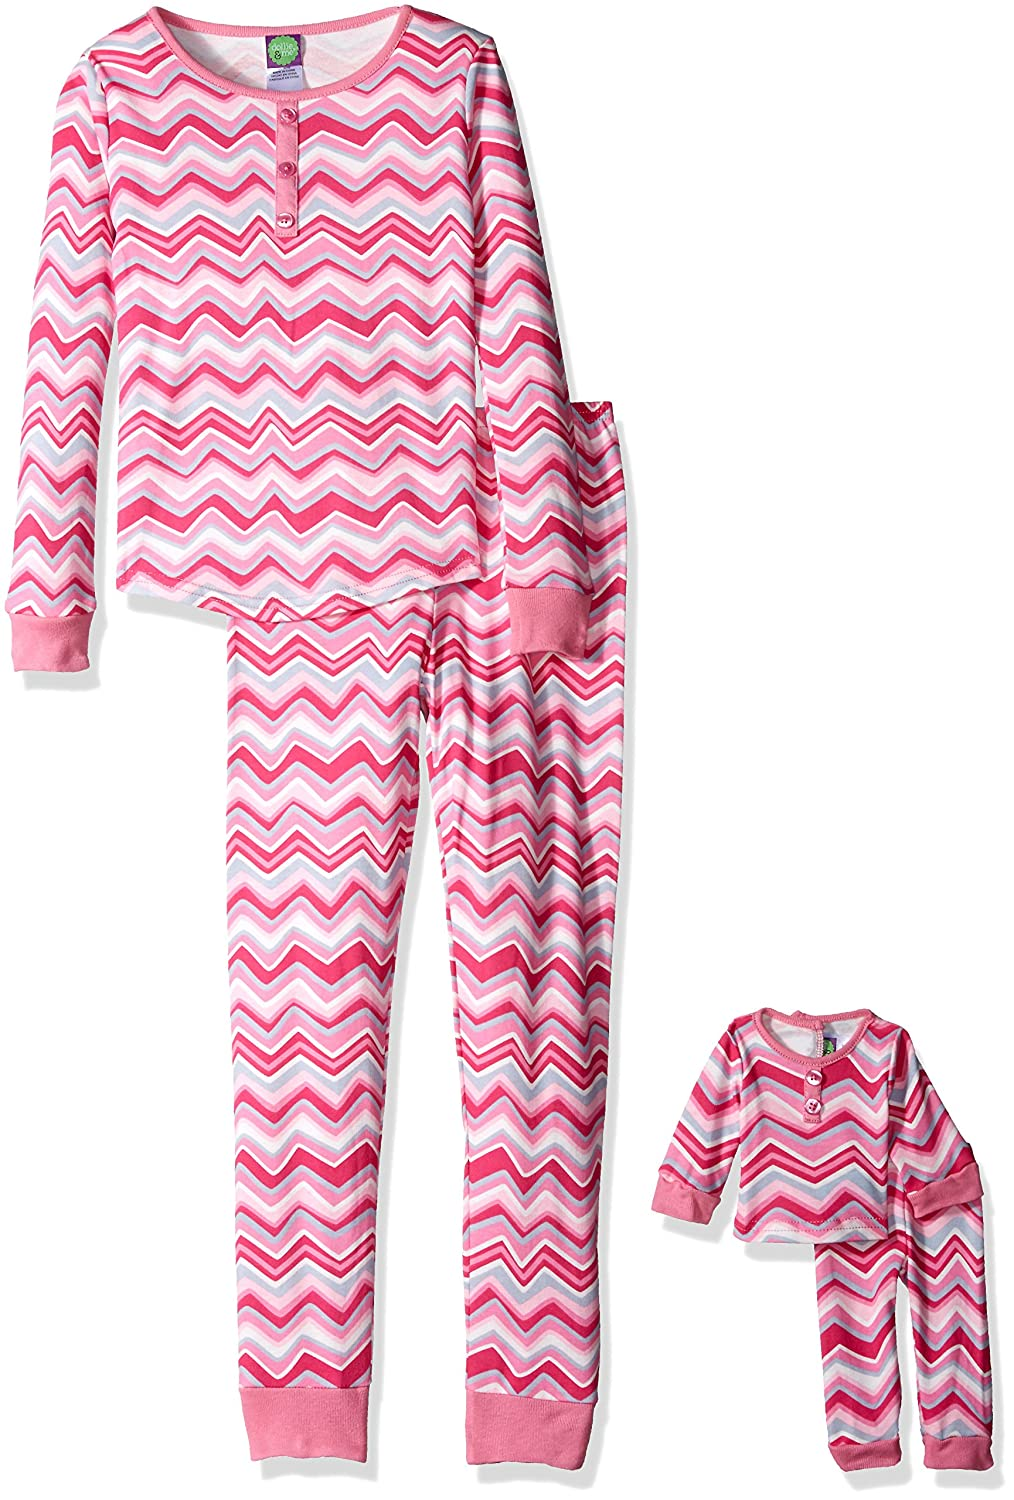 Dollie /& Me Girls Sporty Floral Sleepwear Set